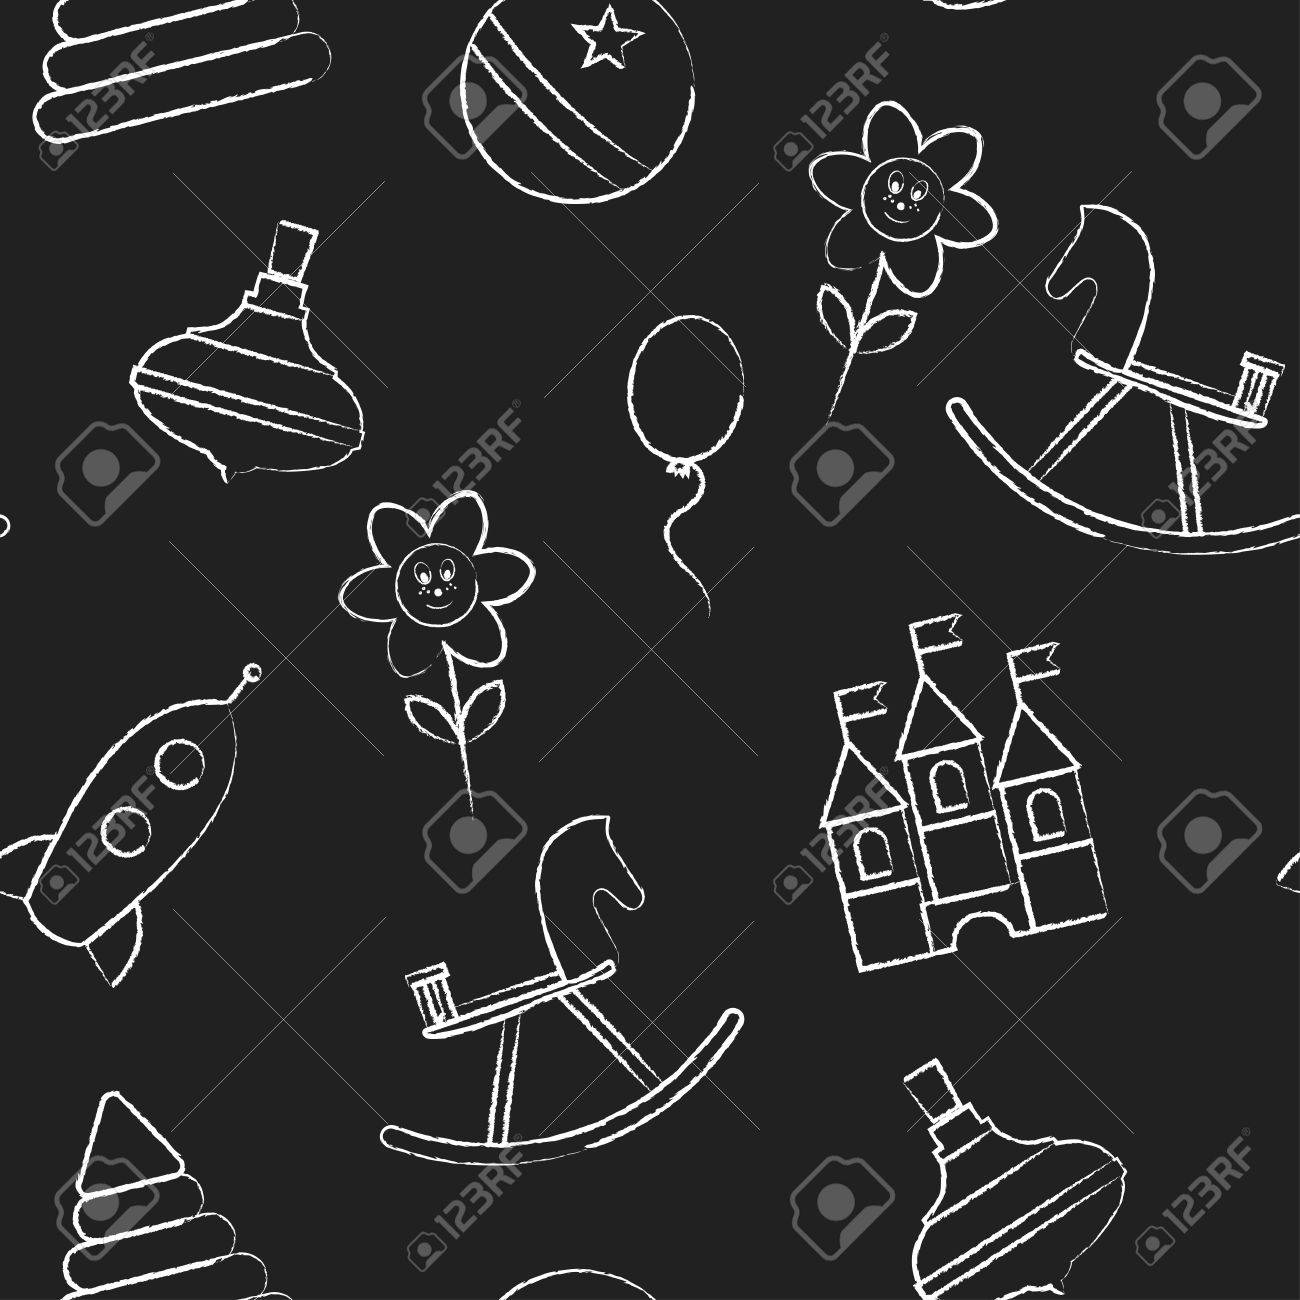 Seamless Pattern With White Childrens Chalk Drawings Jn Black Background Hand Drawn Style